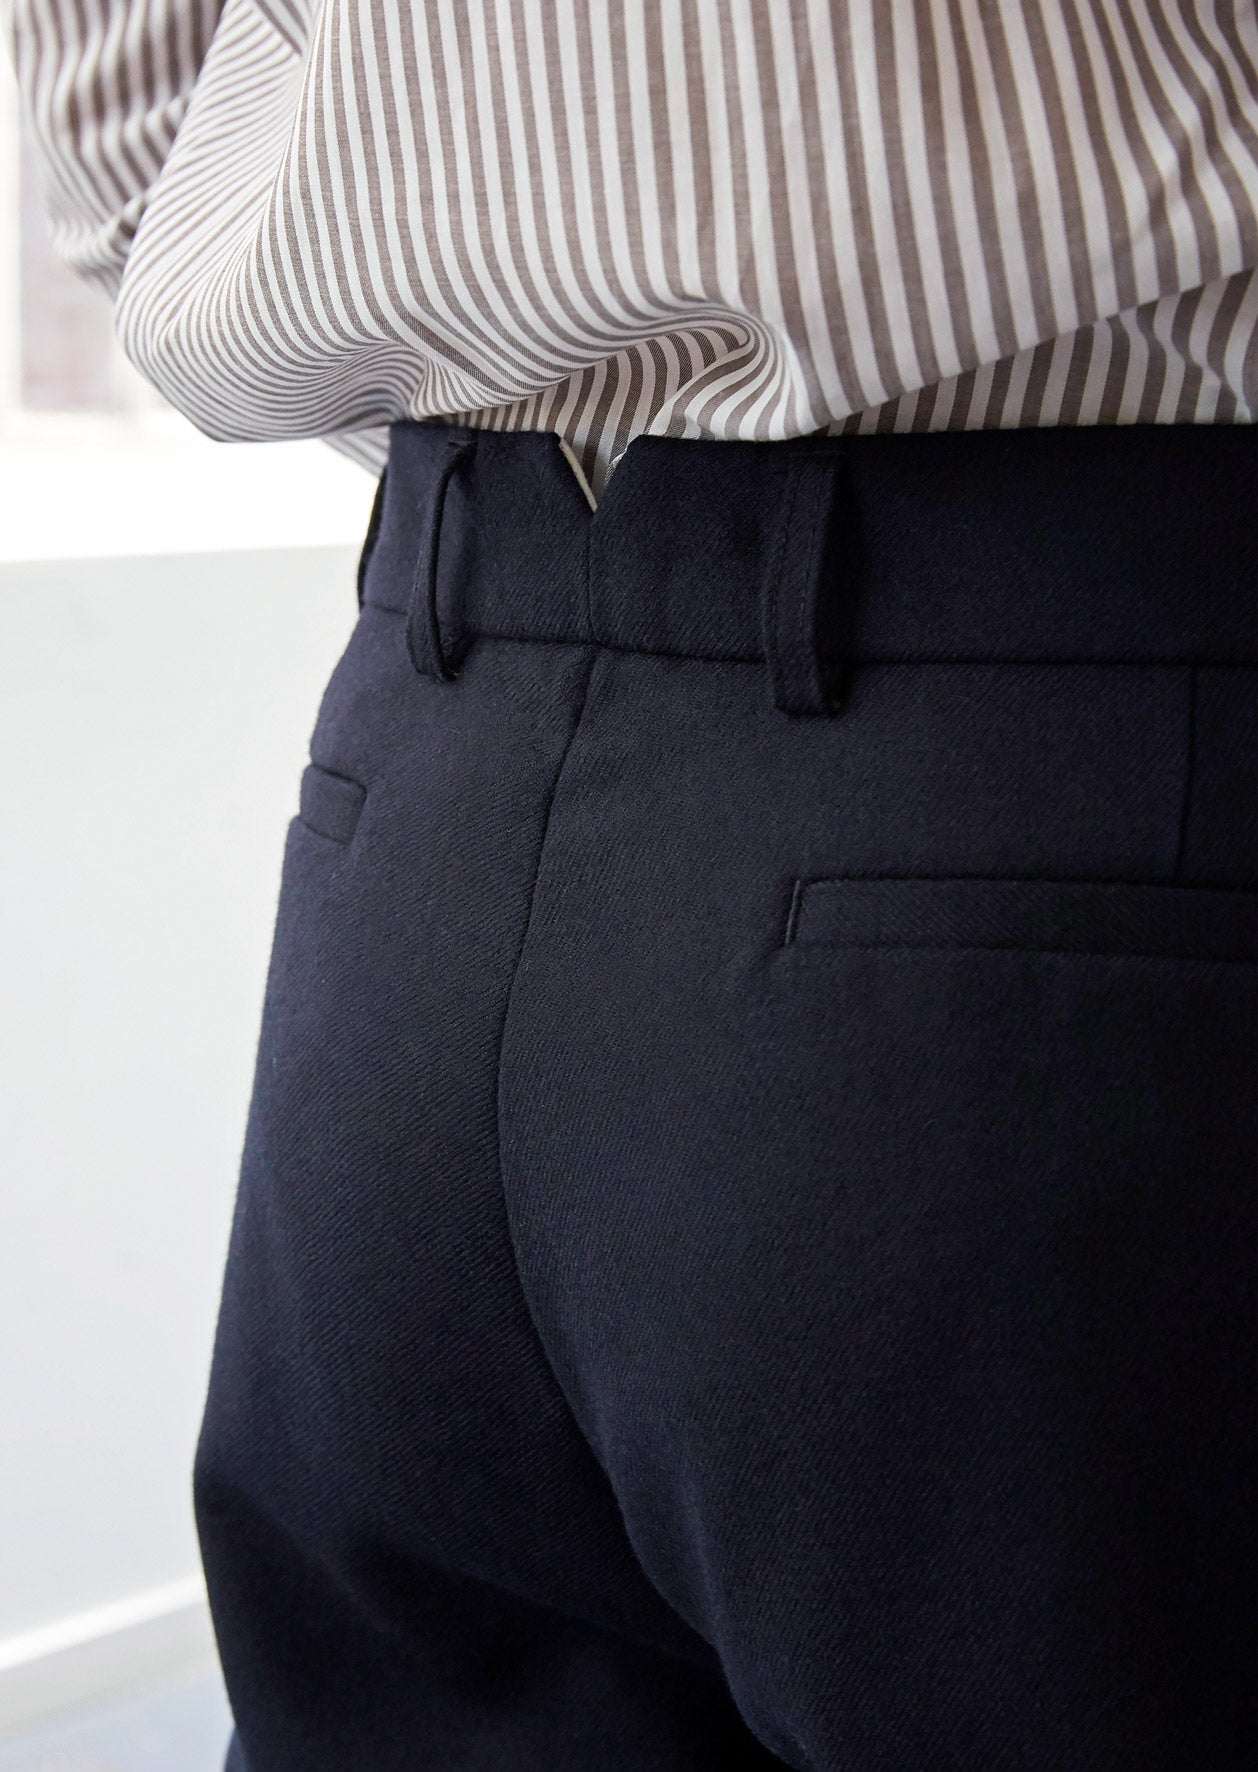 Two pleat large trousers - Japanese wool twill - Navy - De Bonne Facture